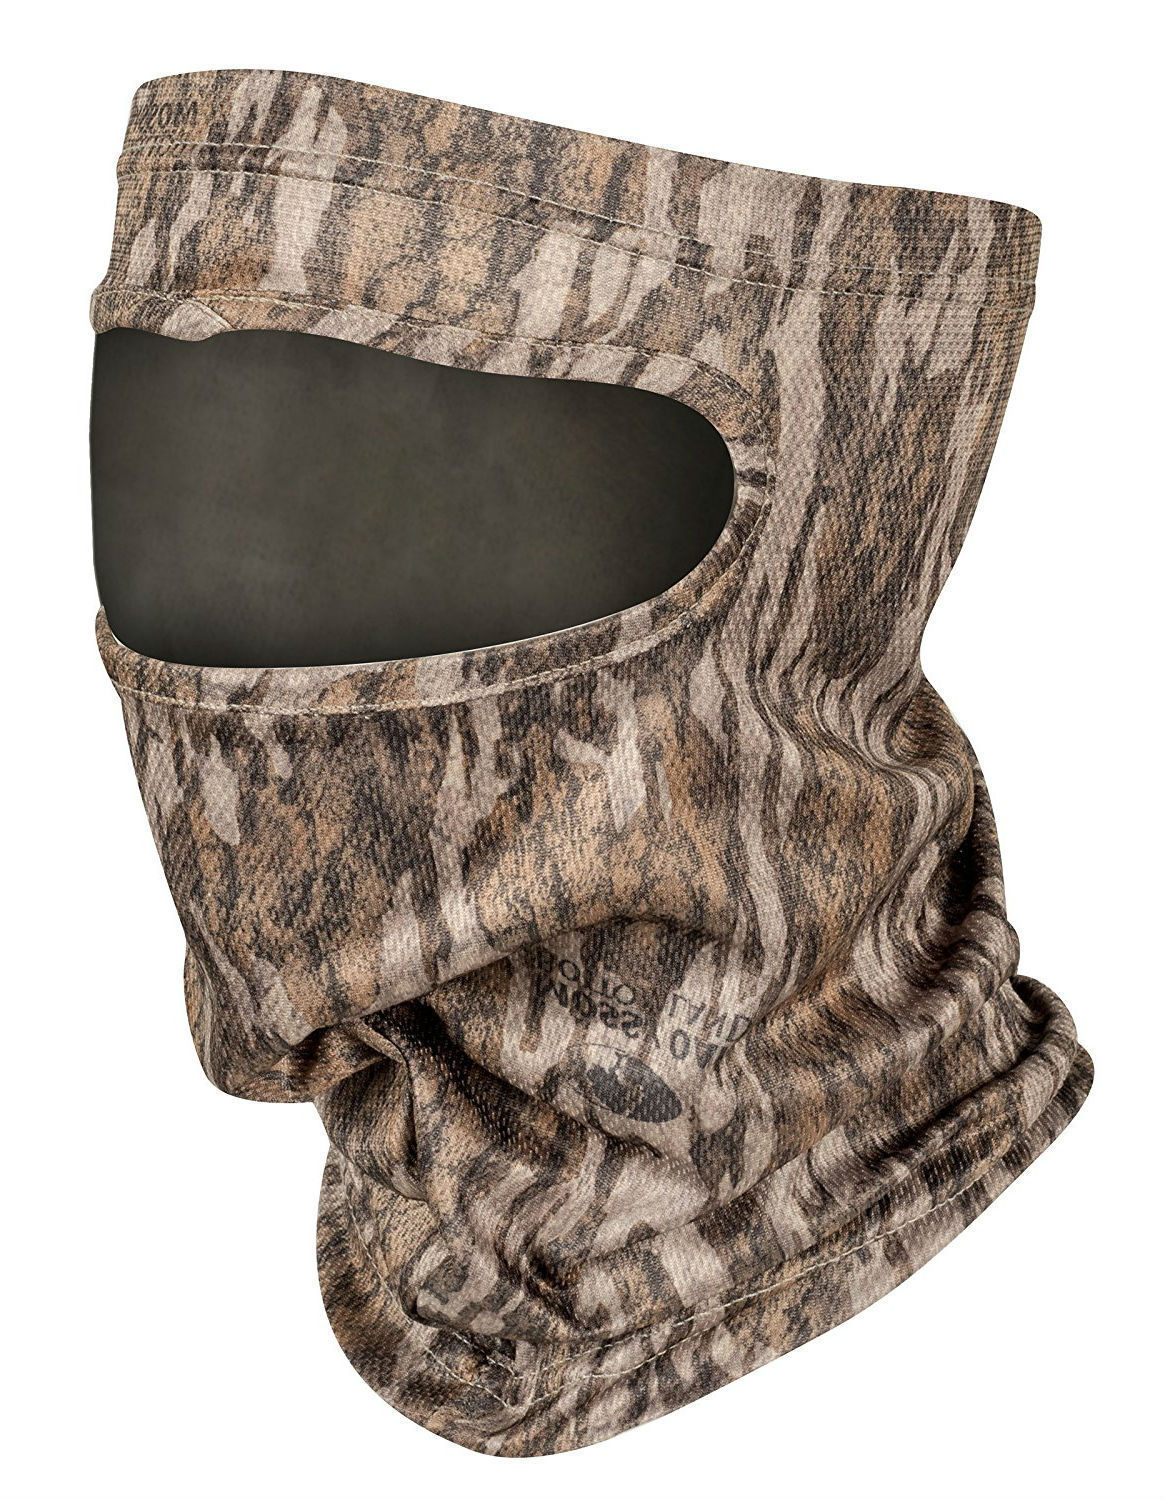 Camo Turkey Hunting Face Mask Head Net Mesh Duck Deer Camouflage Coverage Green image 2